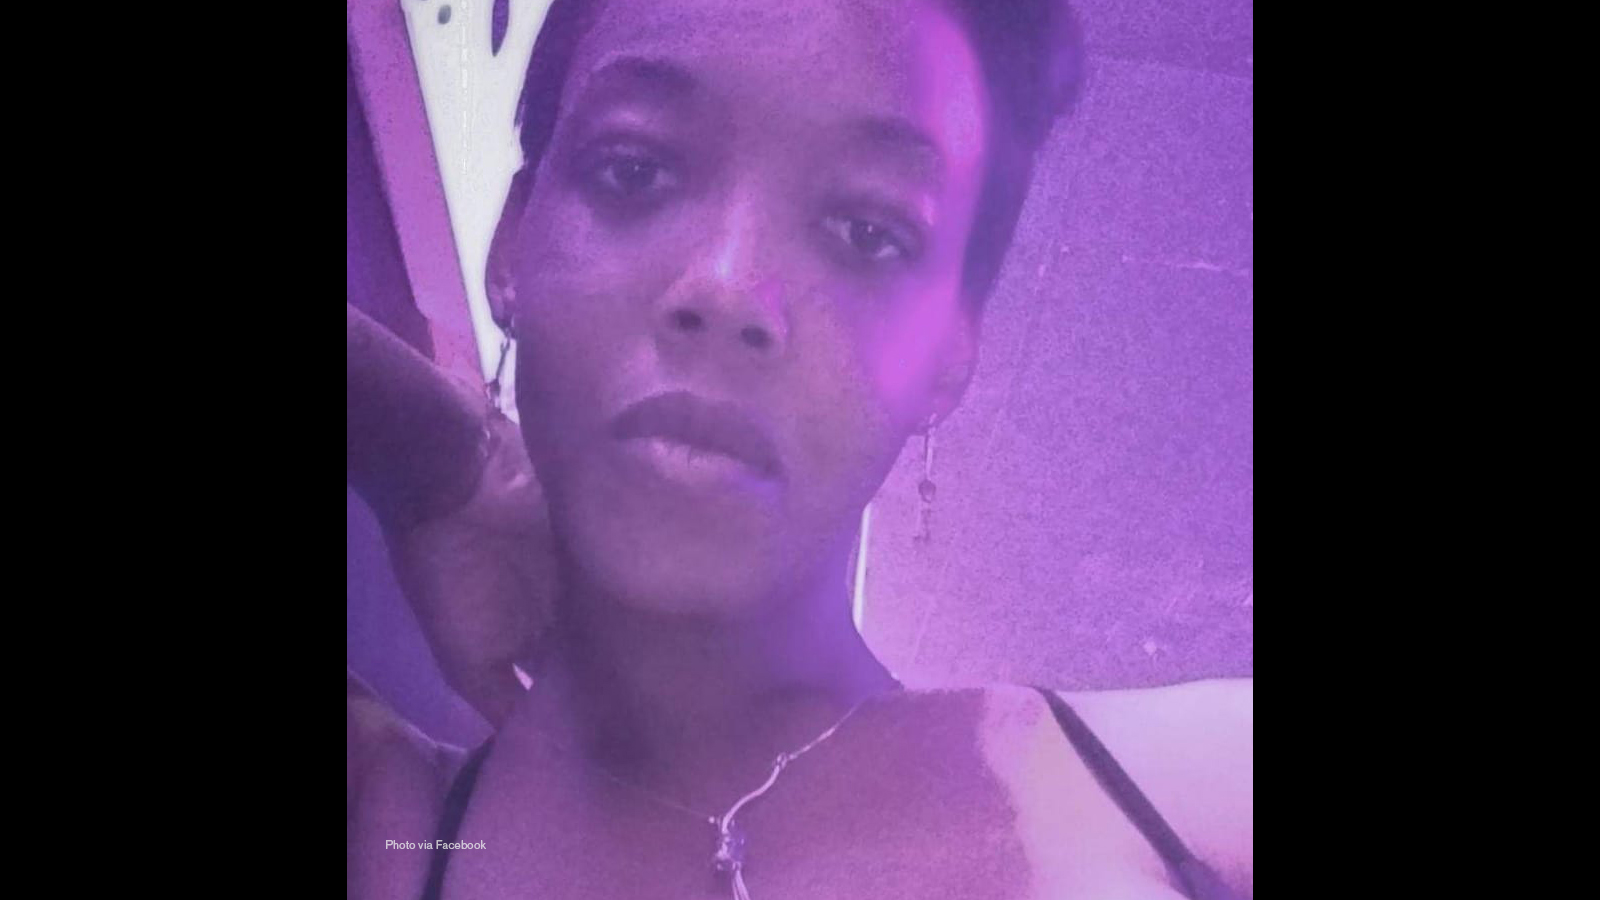 HRC Mourns Michelle Simone, the Third Black Trans Woman Fatally Shot in the Past Week